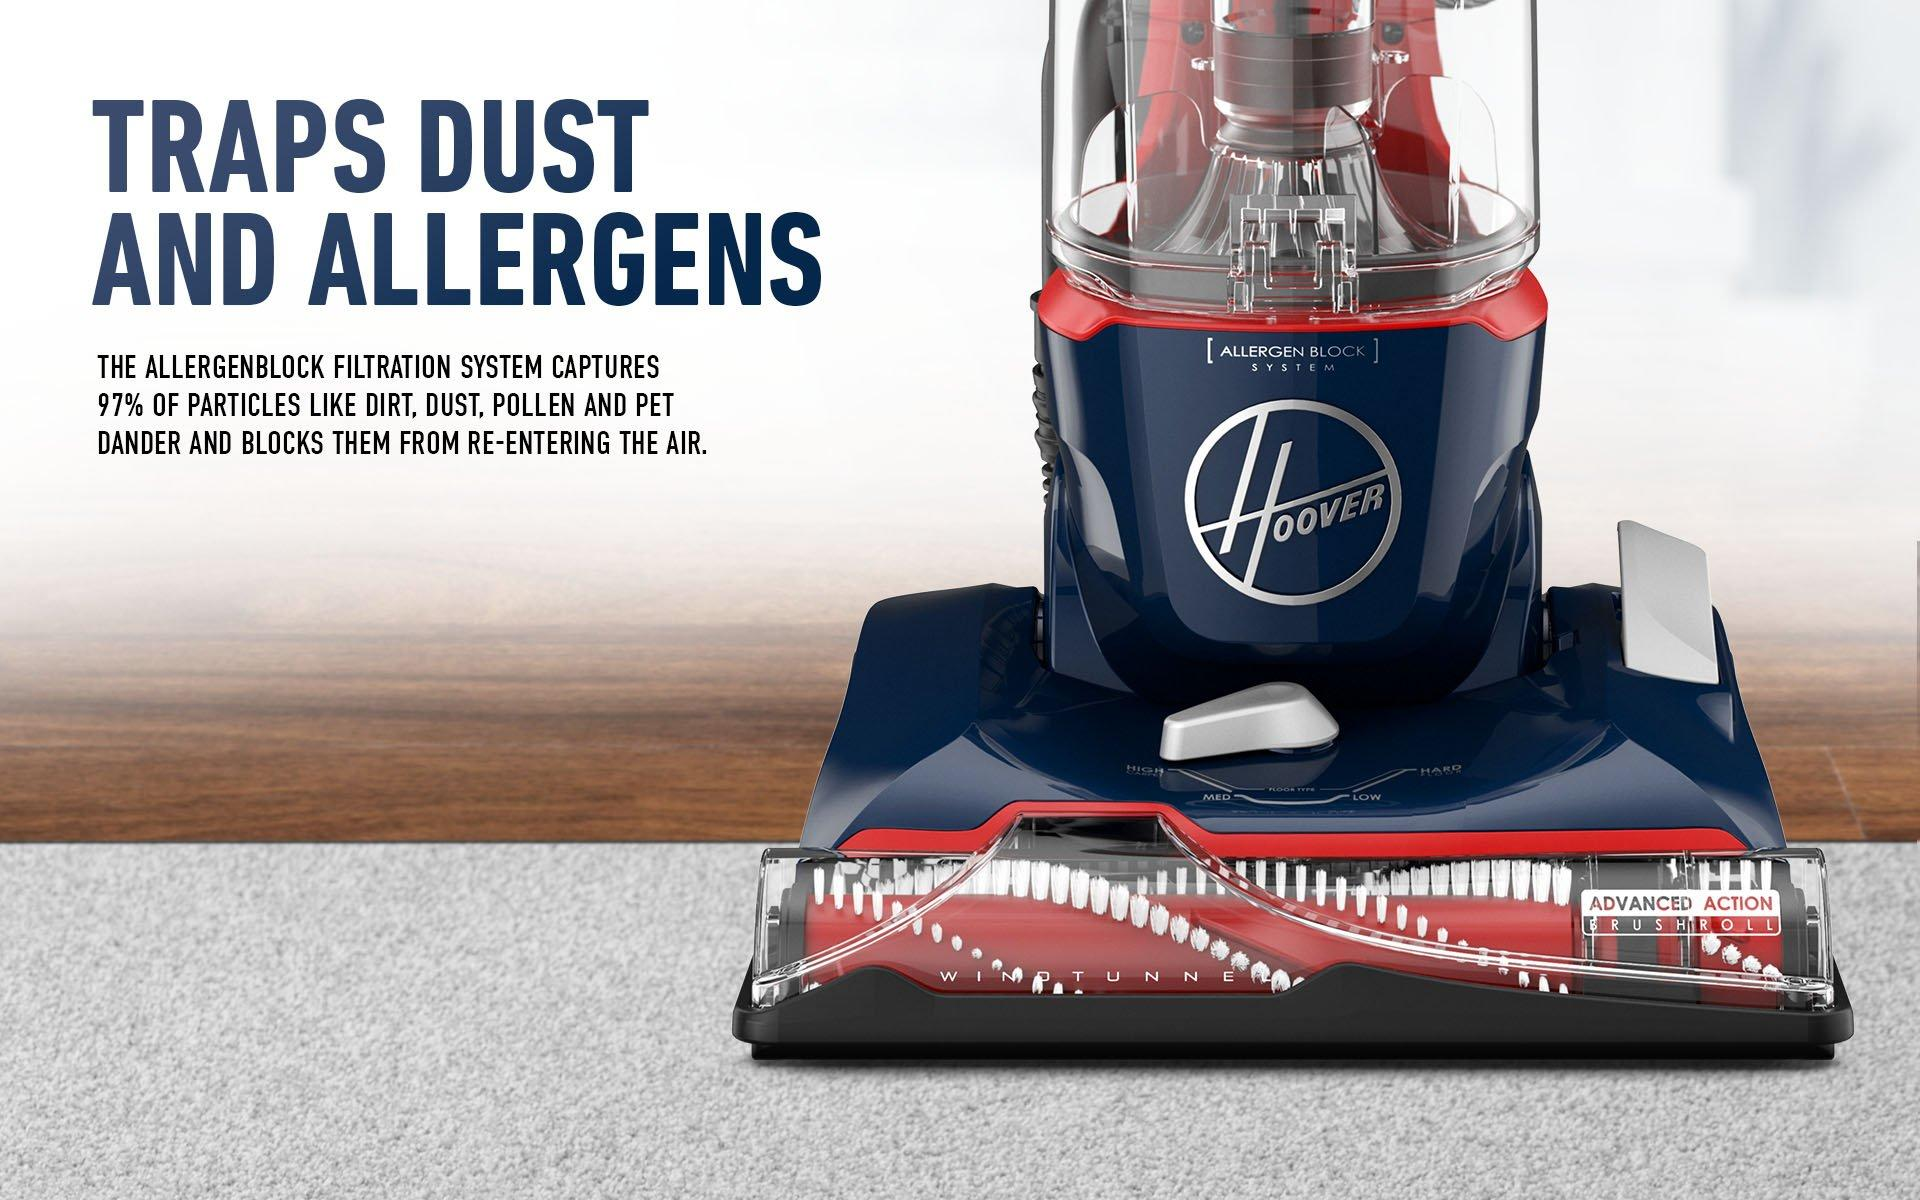 Traps Dust and Allergens